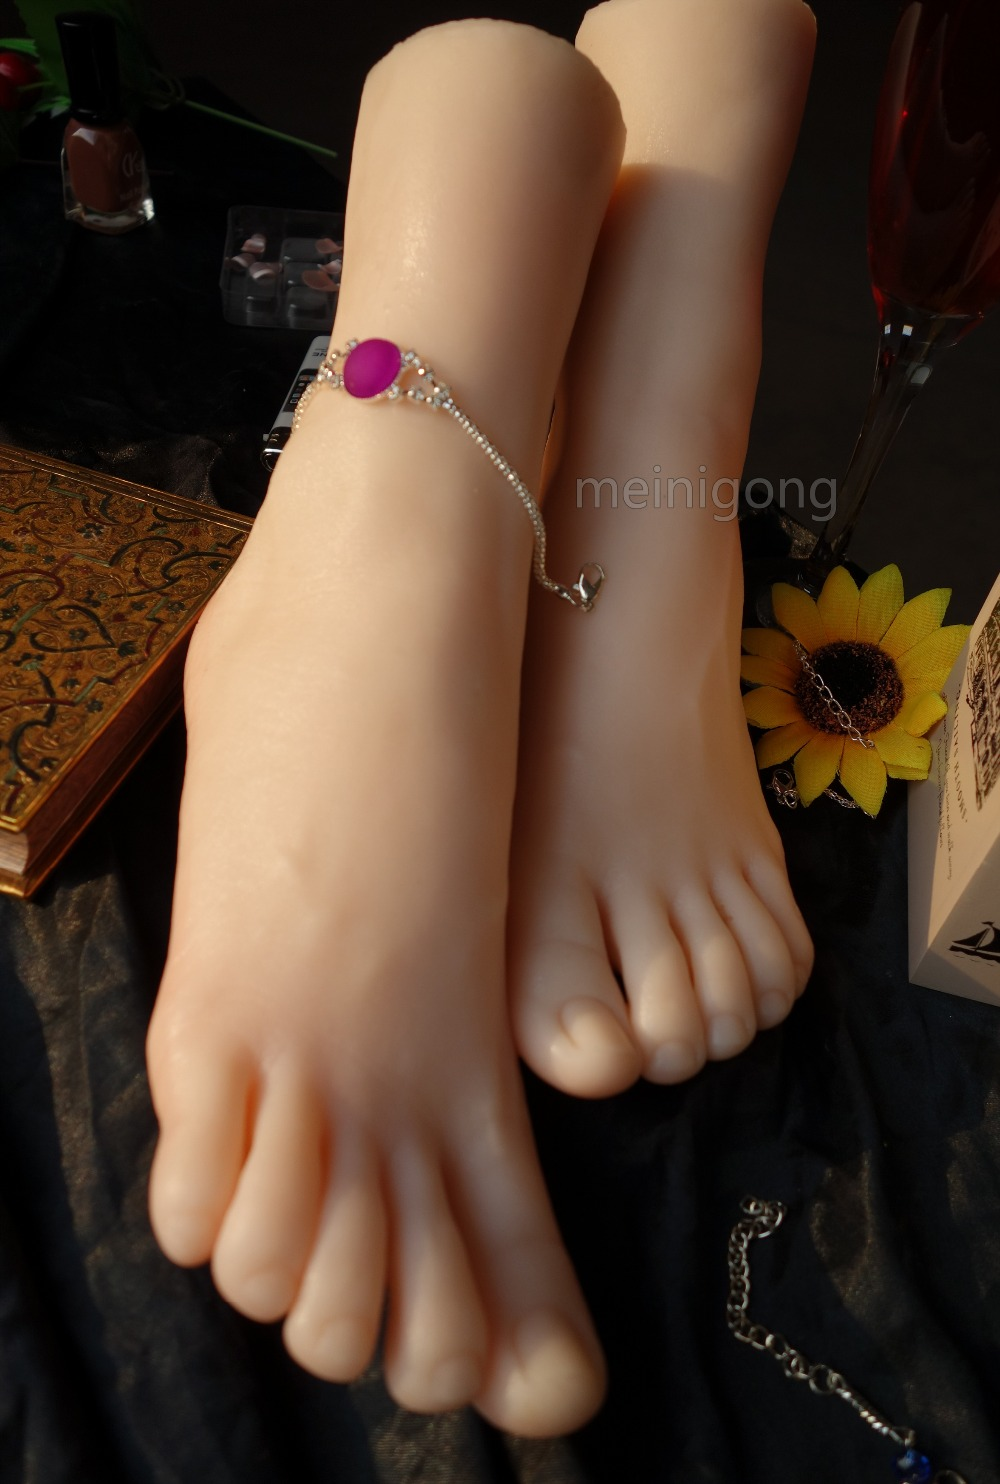 Silicone Lifesize Female Mannequin Foot Shoes Display Model Prop ,Lifesize Foot Display Shoes ModelSilicone Lifesize Female Mannequin Foot Shoes Display Model Prop ,Lifesize Foot Display Shoes Model